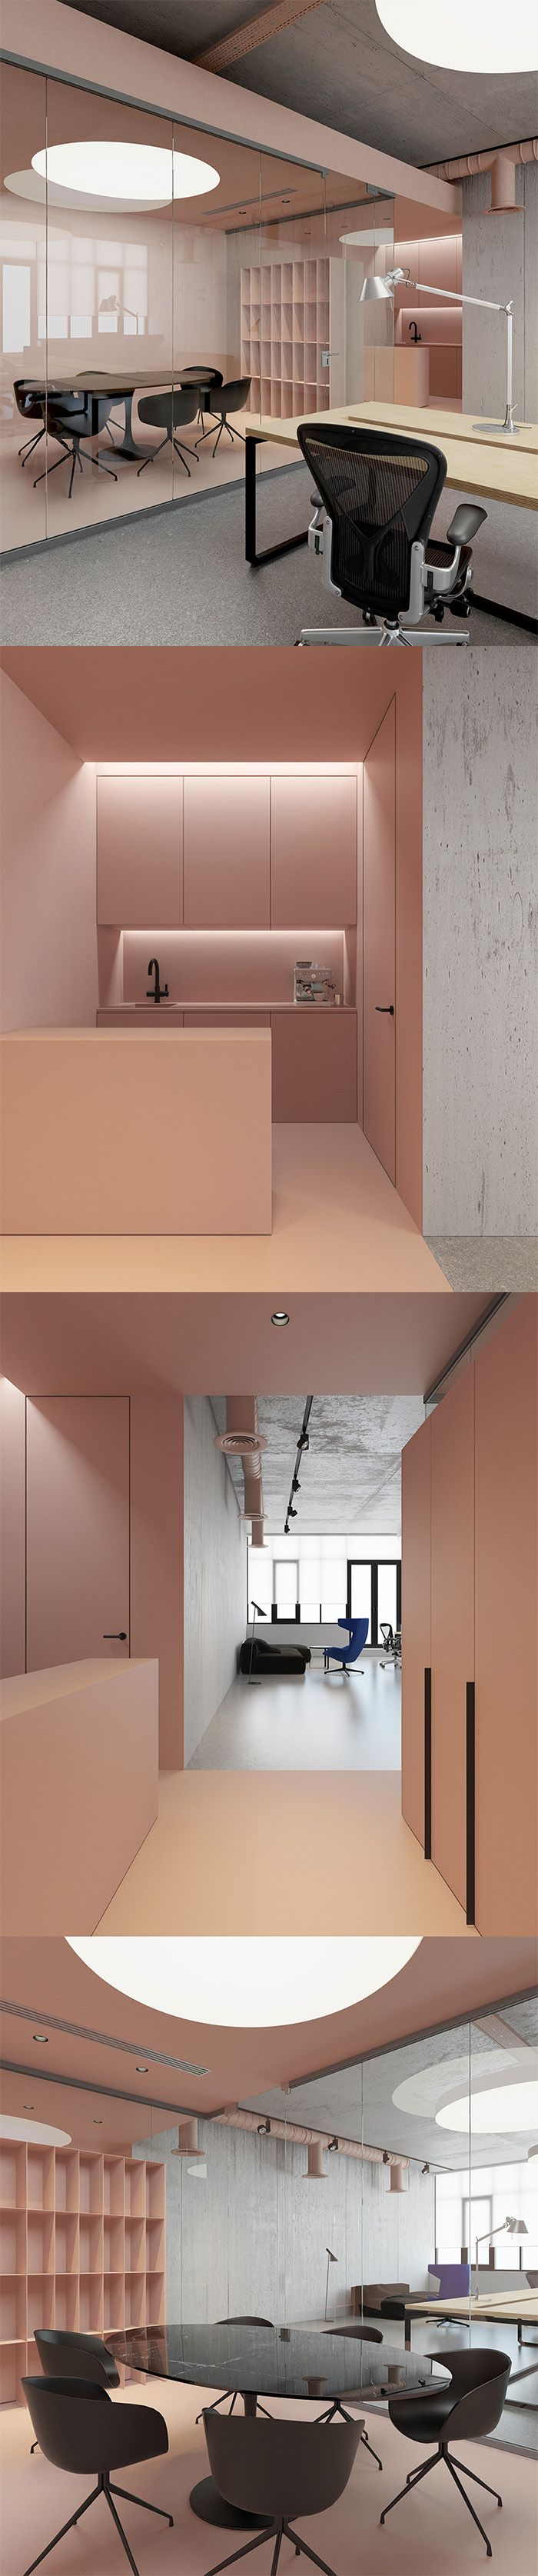 Office P – Kiev, Ukraine http://thecoolhunter.net/office-p-kiev-ukraine/